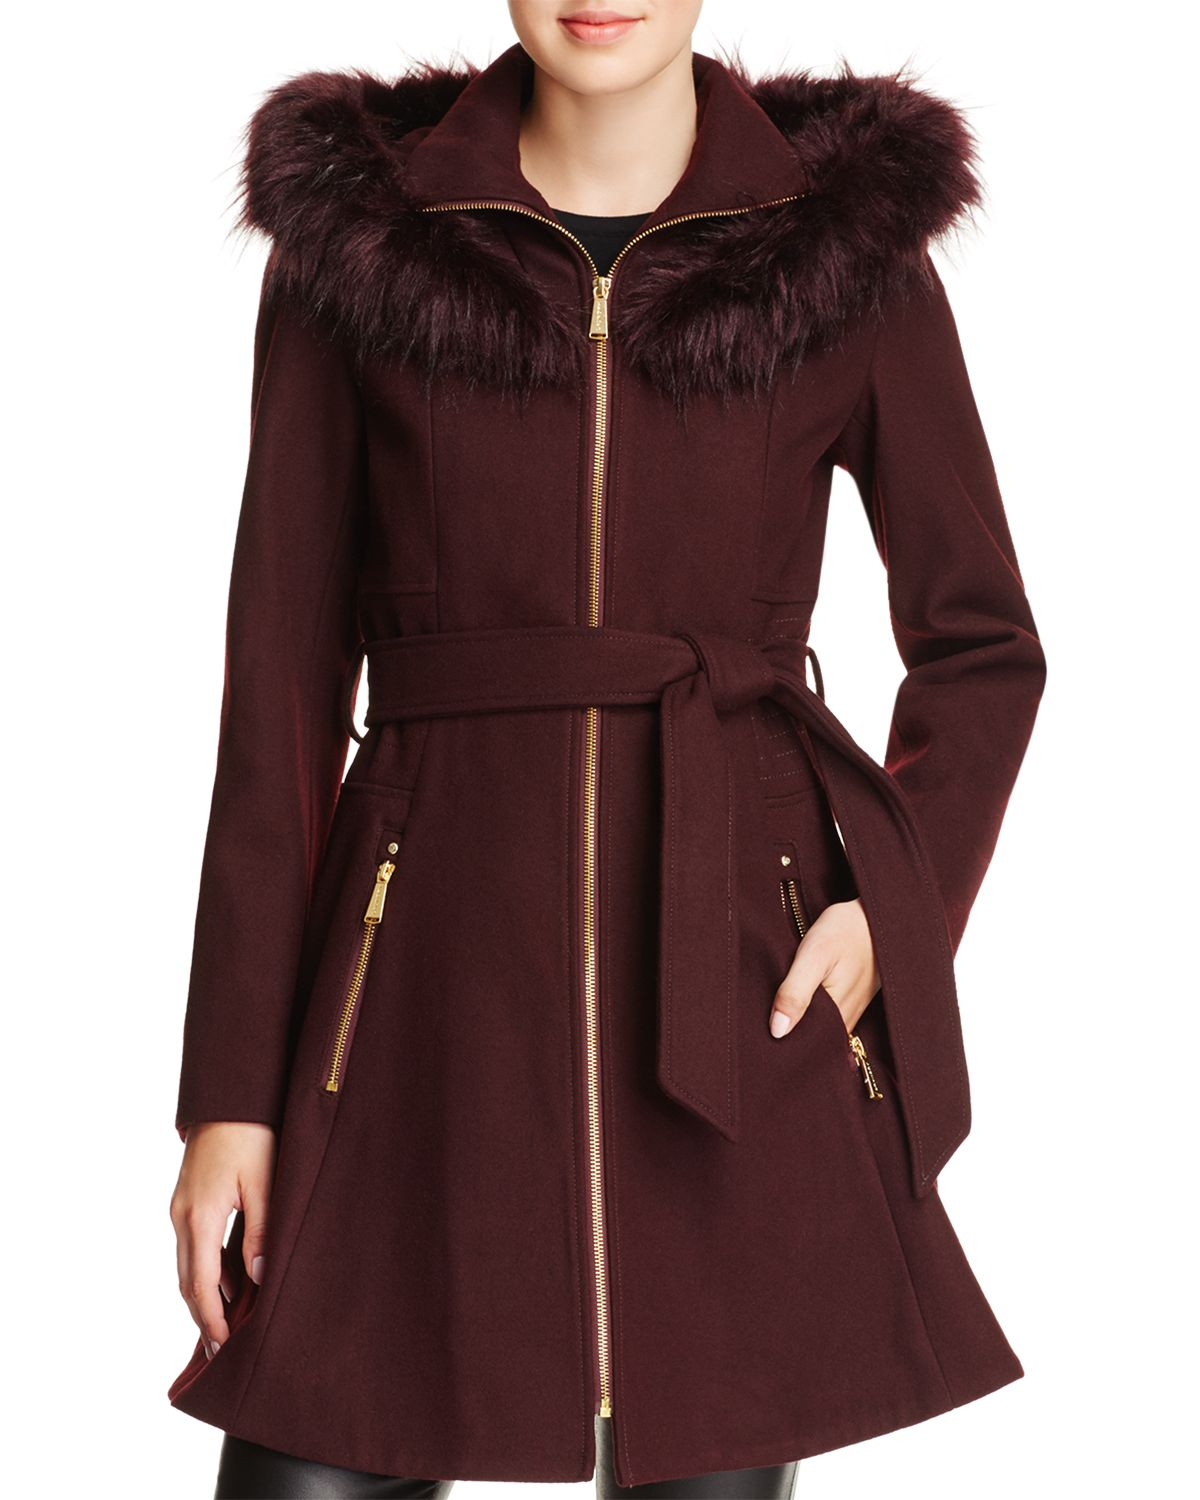 Faux Fur Trim Belted Fit & Flare Coat by Laundry By Shelli Segal